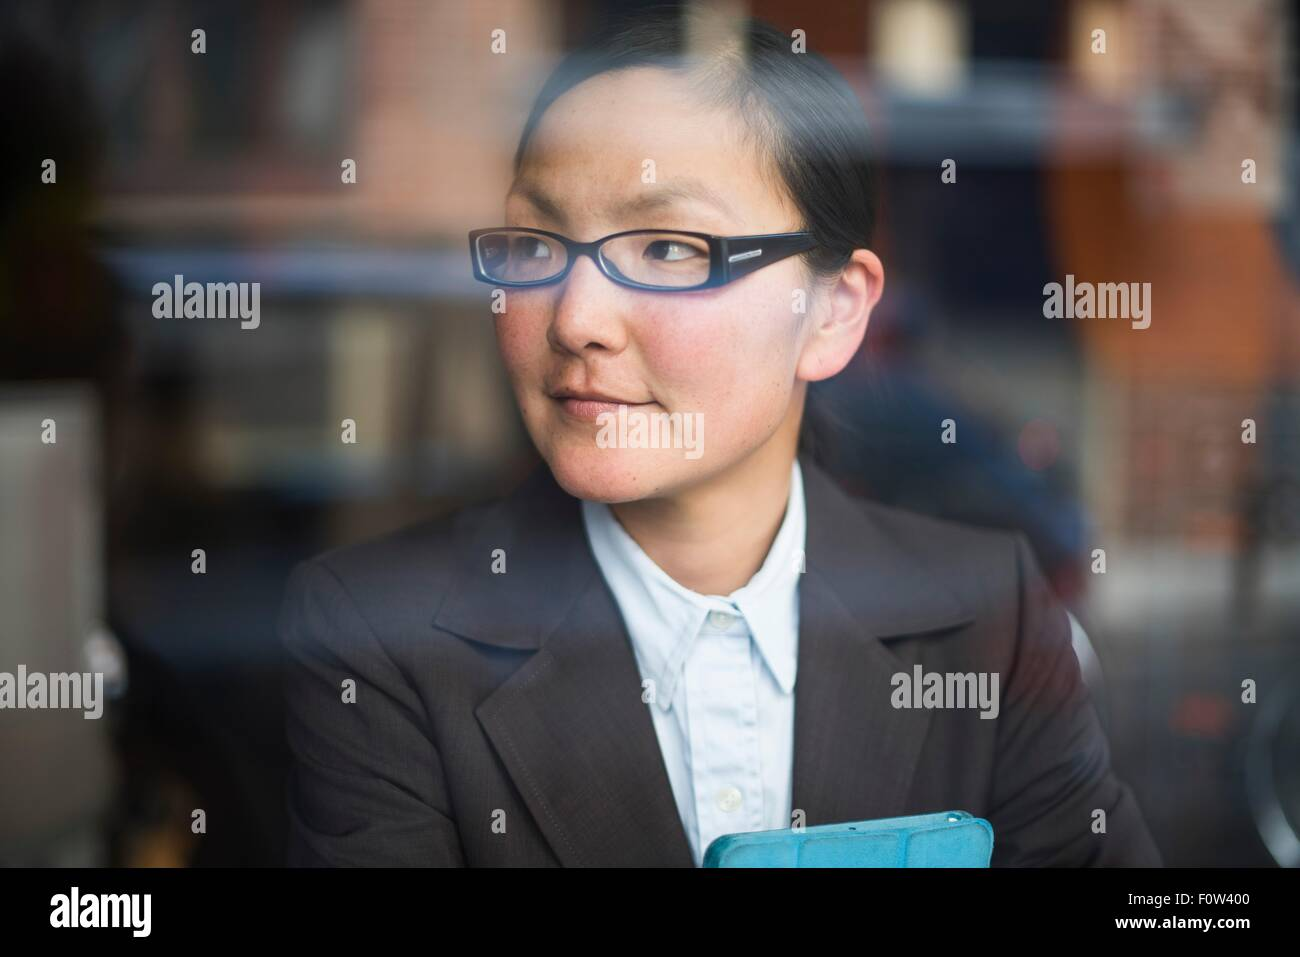 Businesswoman with digital tablet, behind glass window - Stock Image